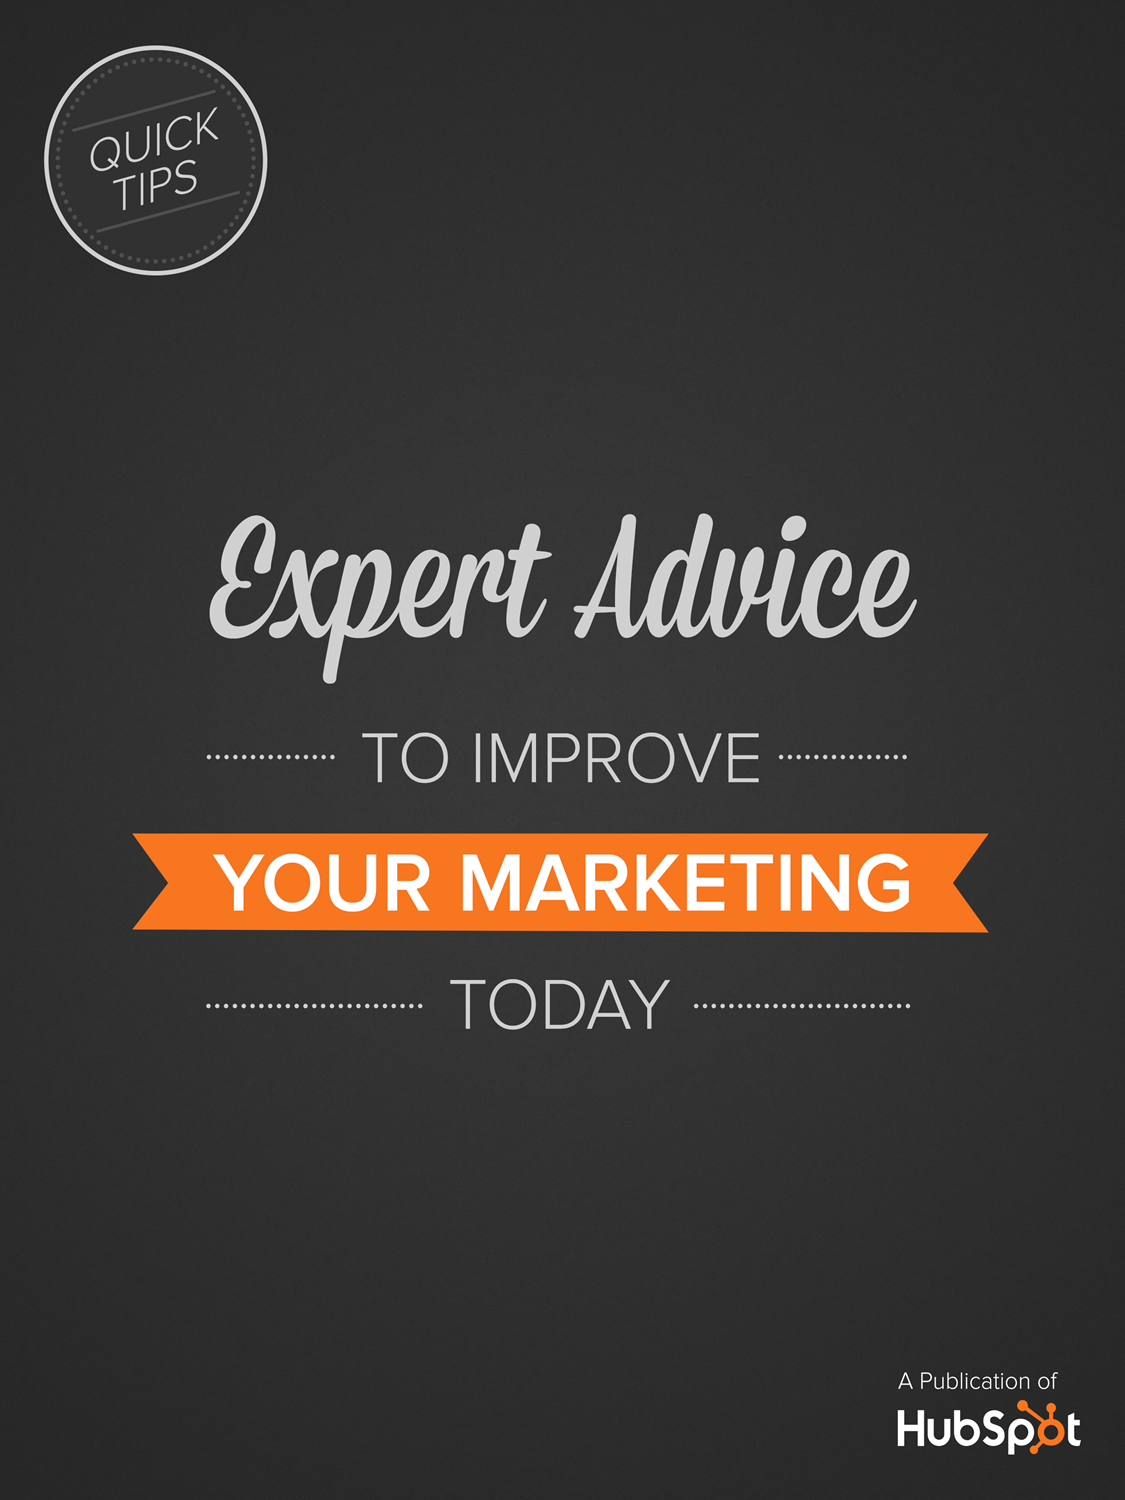 Marketing Industry Experts | How to Improve Your Marketing Today